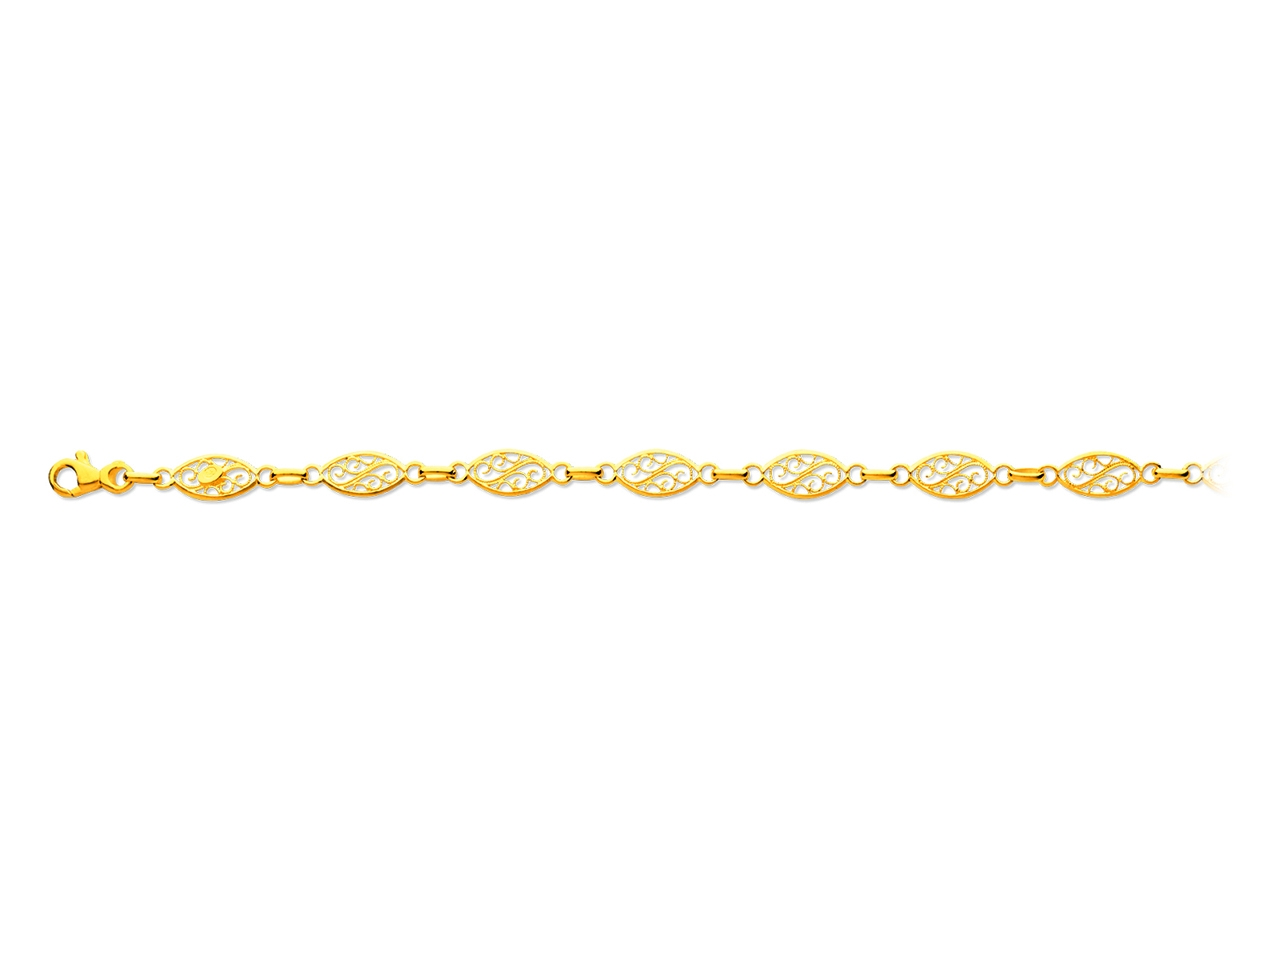 Bracelet maille filigrane, Or jaune 18k, 6 mm, 19 cm